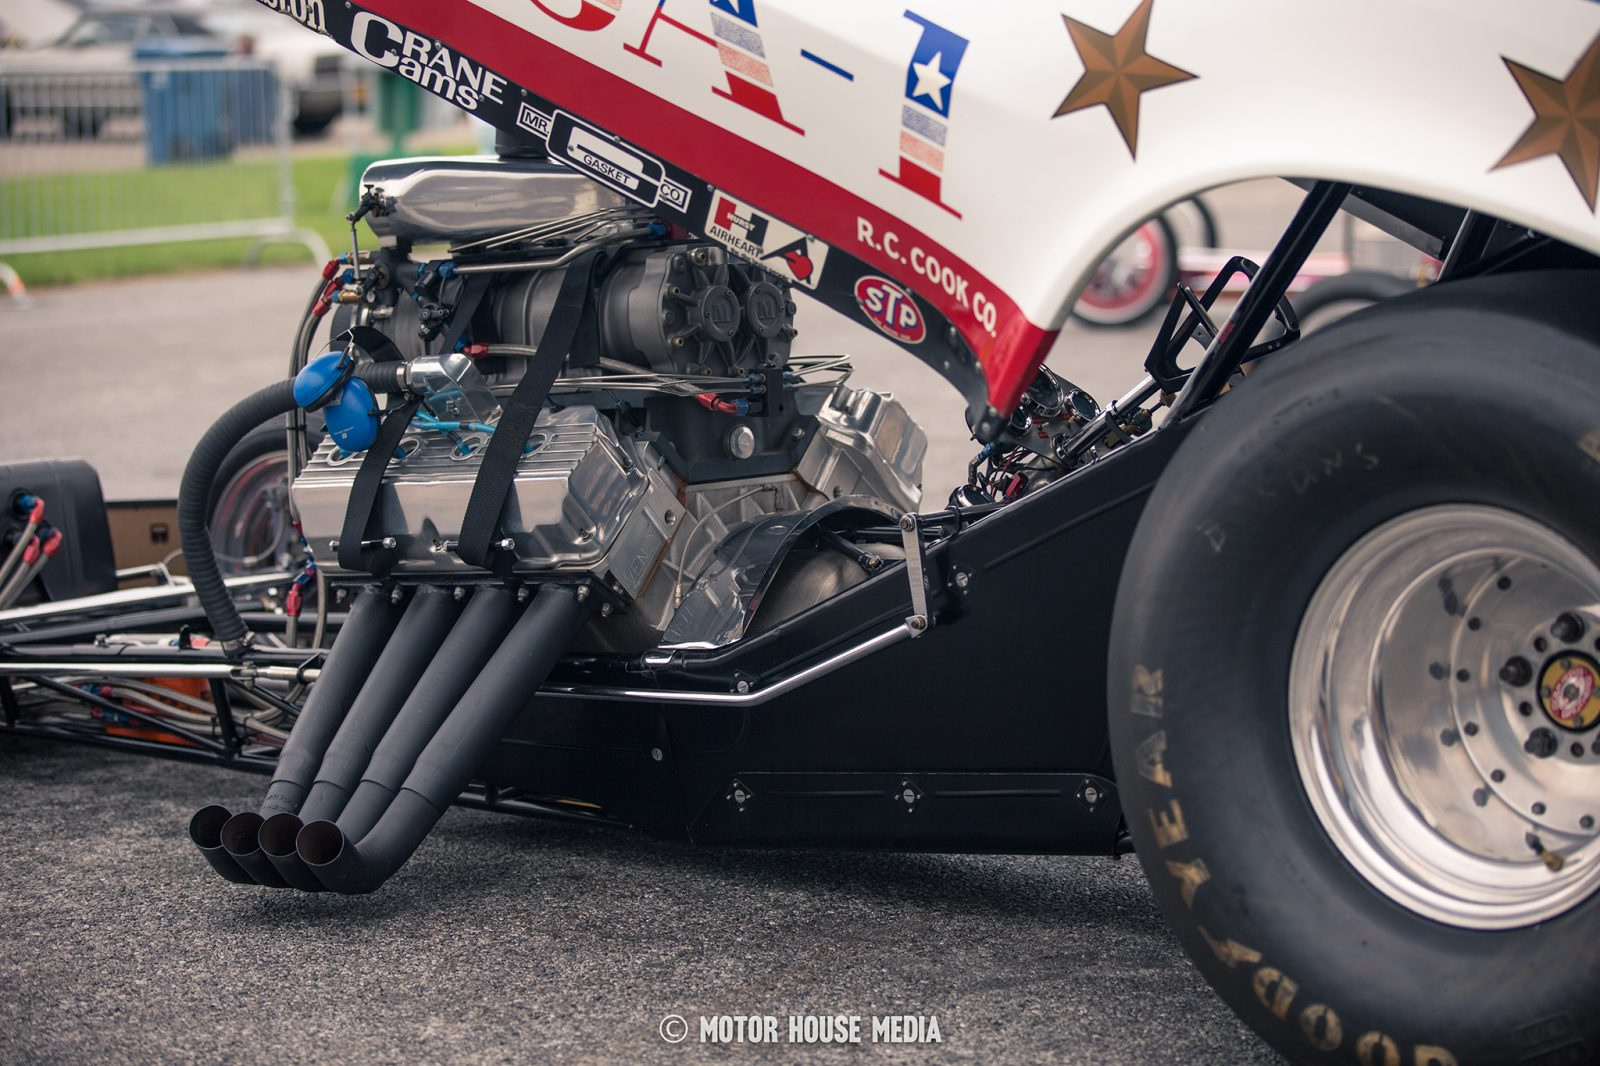 Bruce Larson's vintage Funny cars during Thunder Fest by Summit racing at the GoodGuys car show